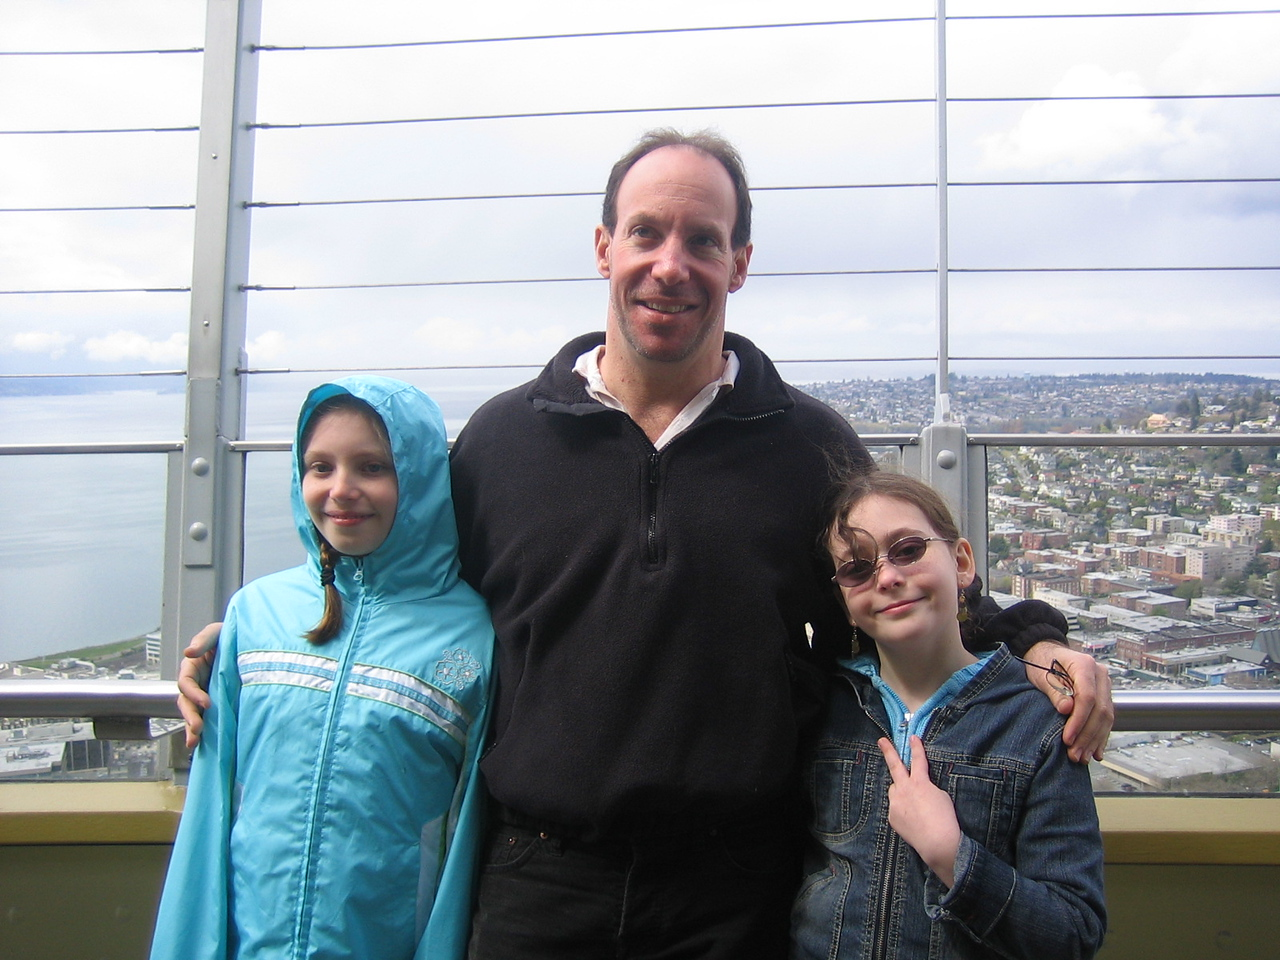 Emily, Barry and May (flashing some sort of gang sign) on top of the Space Needle.